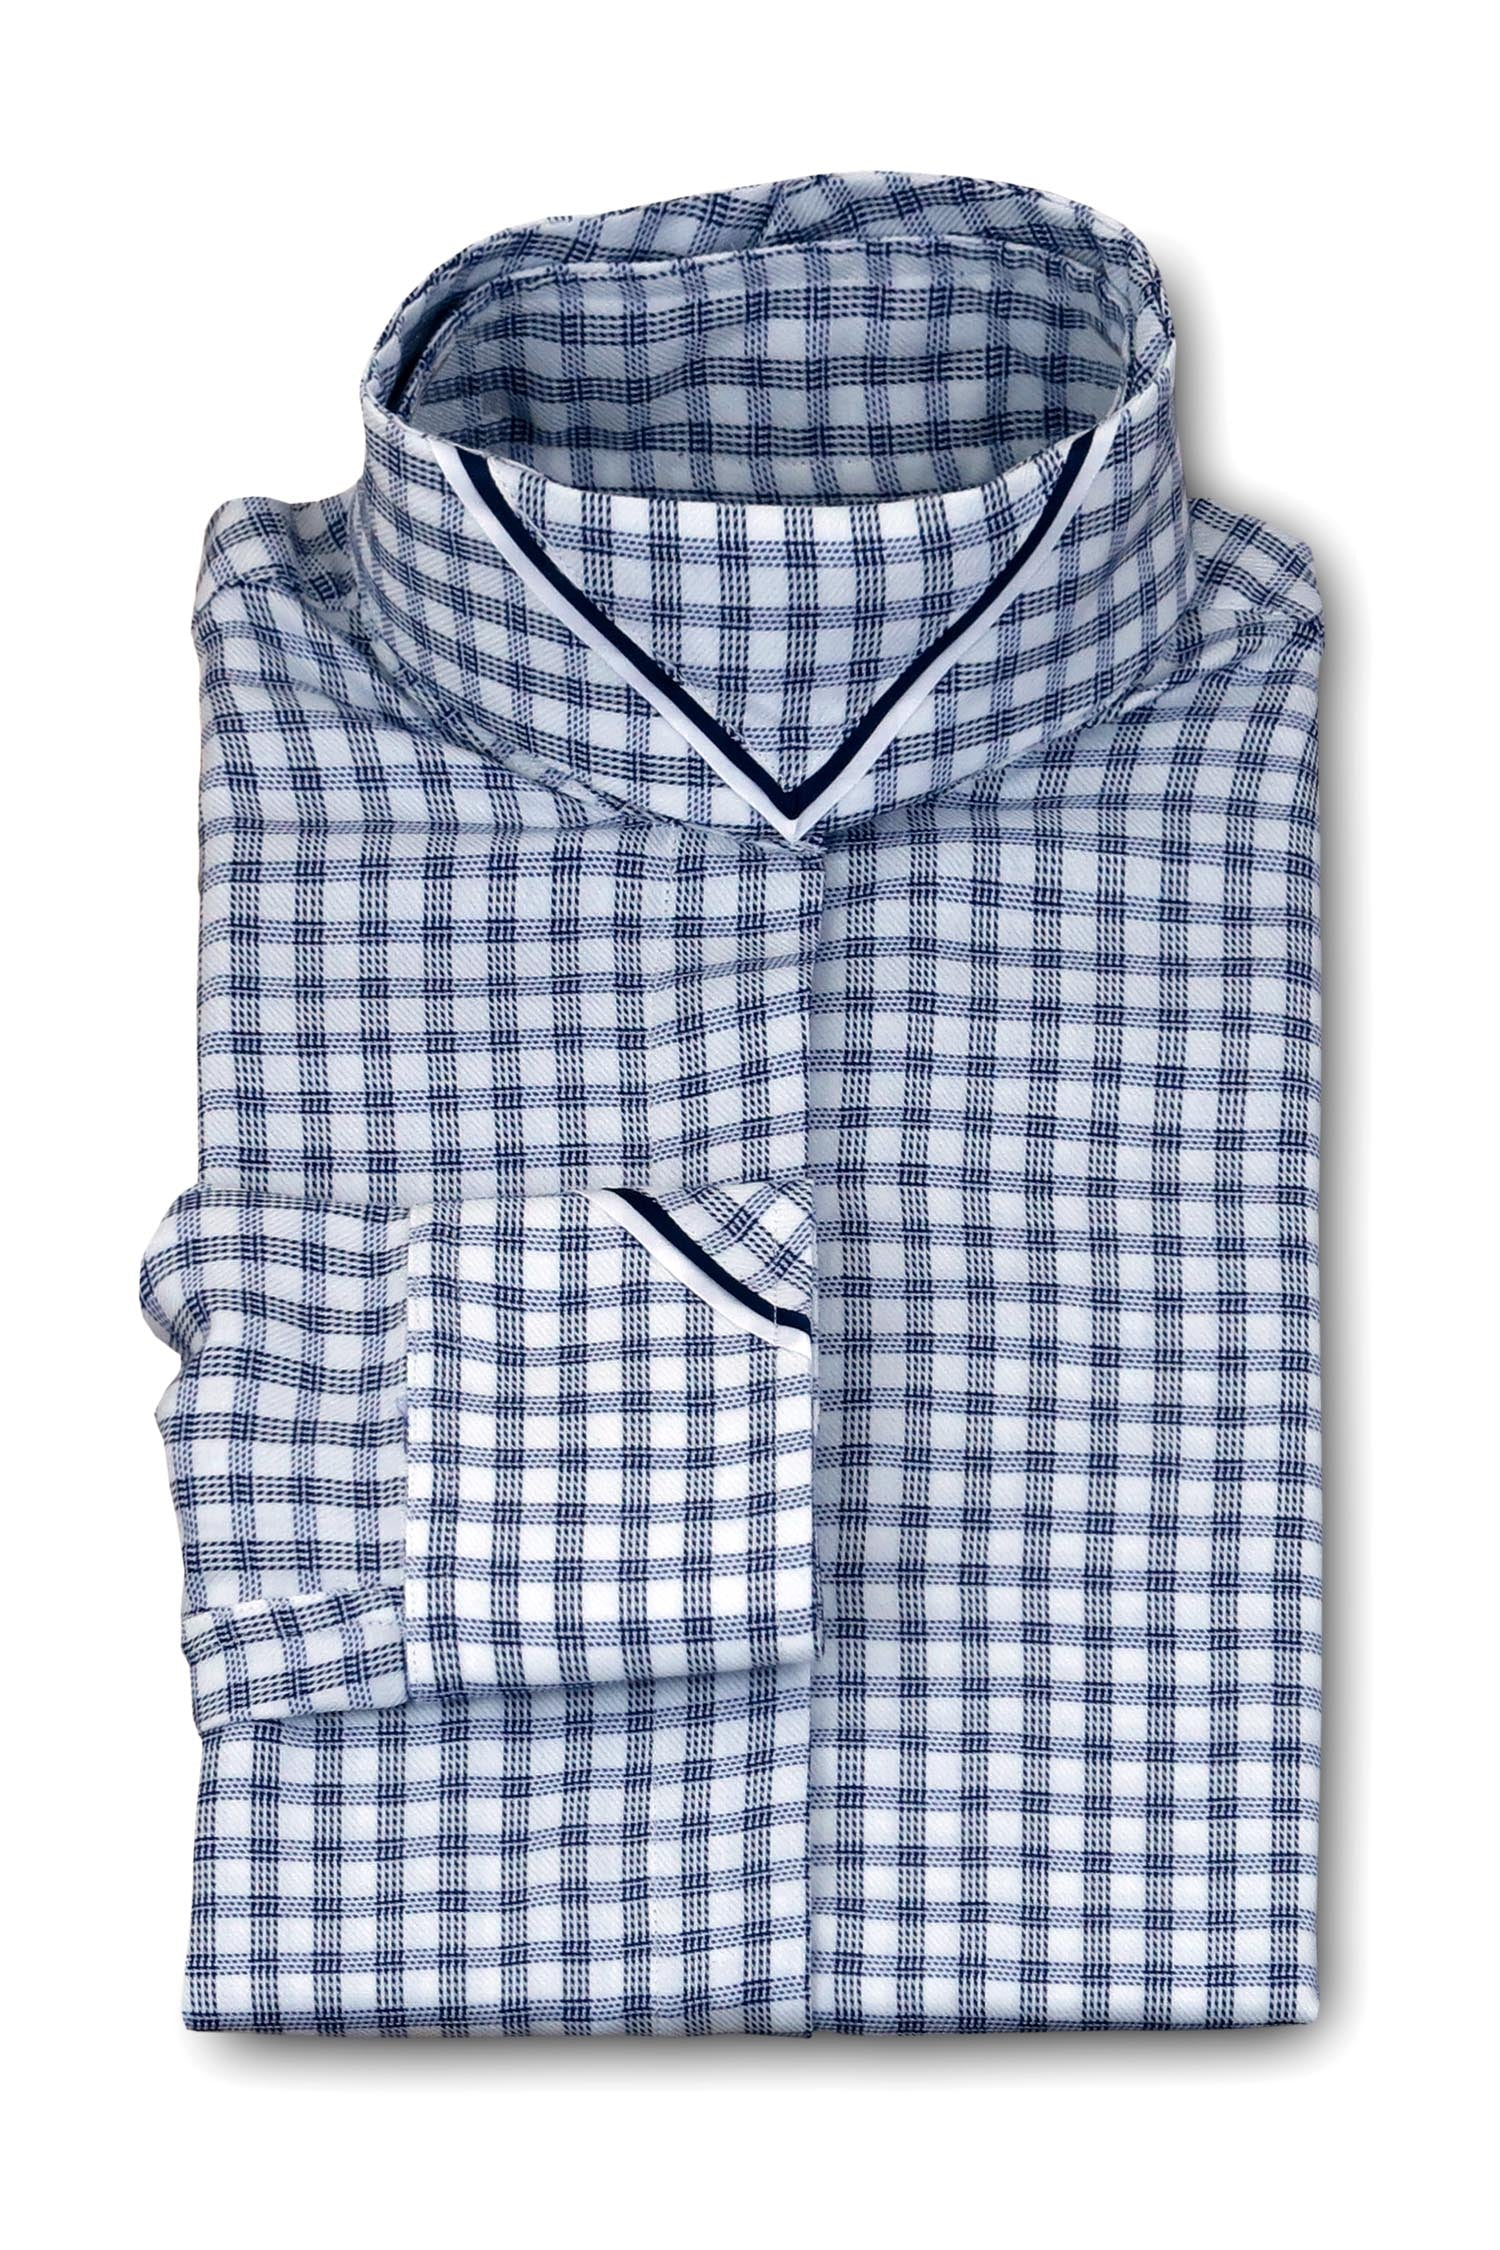 White Plaid - Navy & White